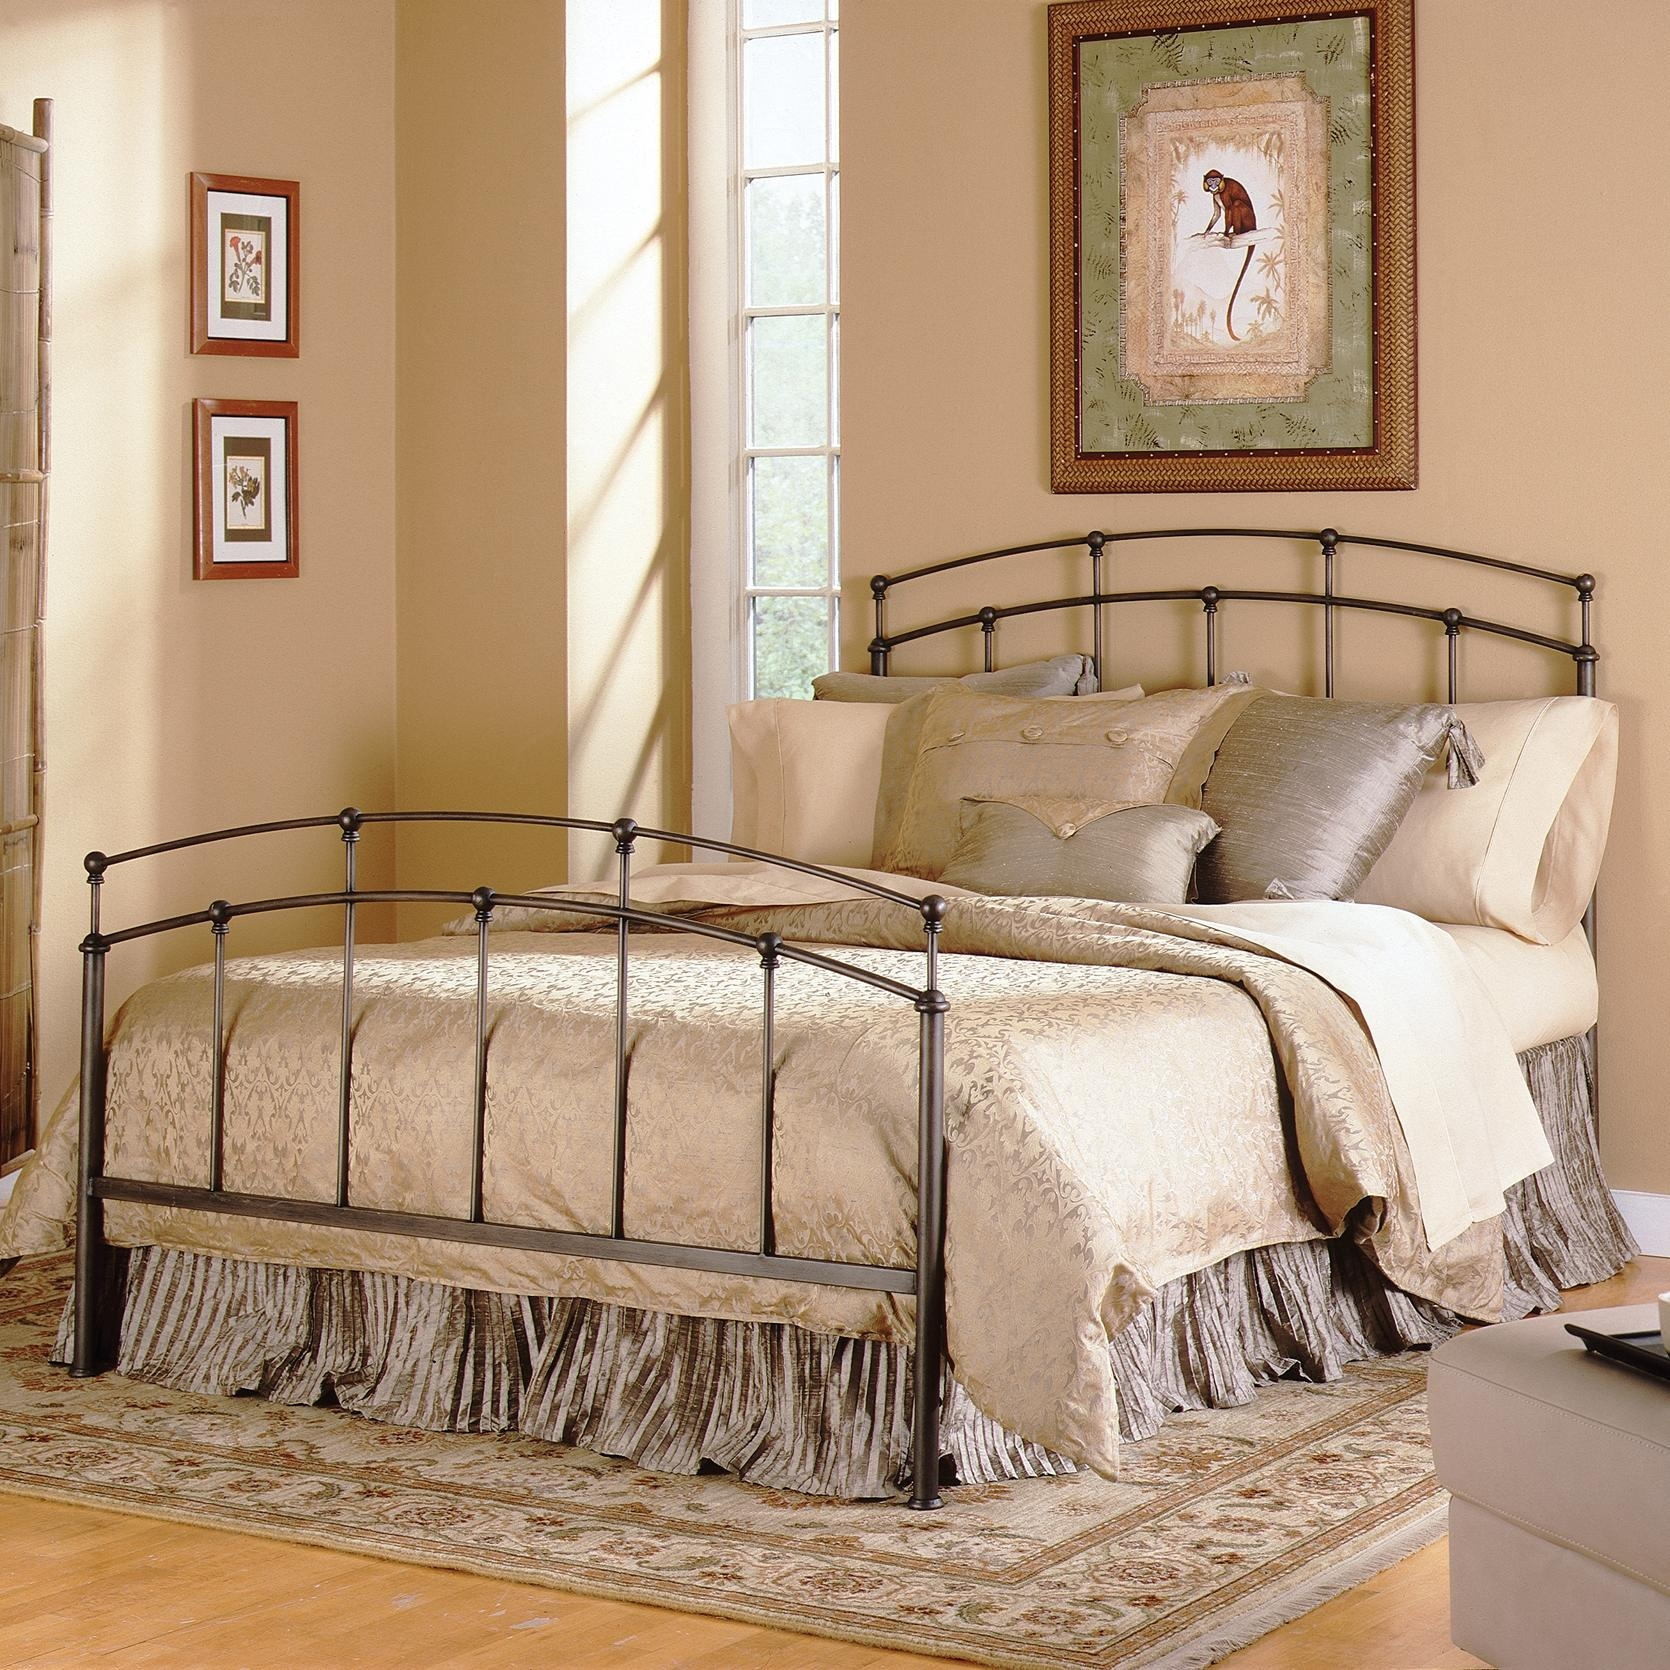 Fenton Metal Bed Frame1670 X 1670